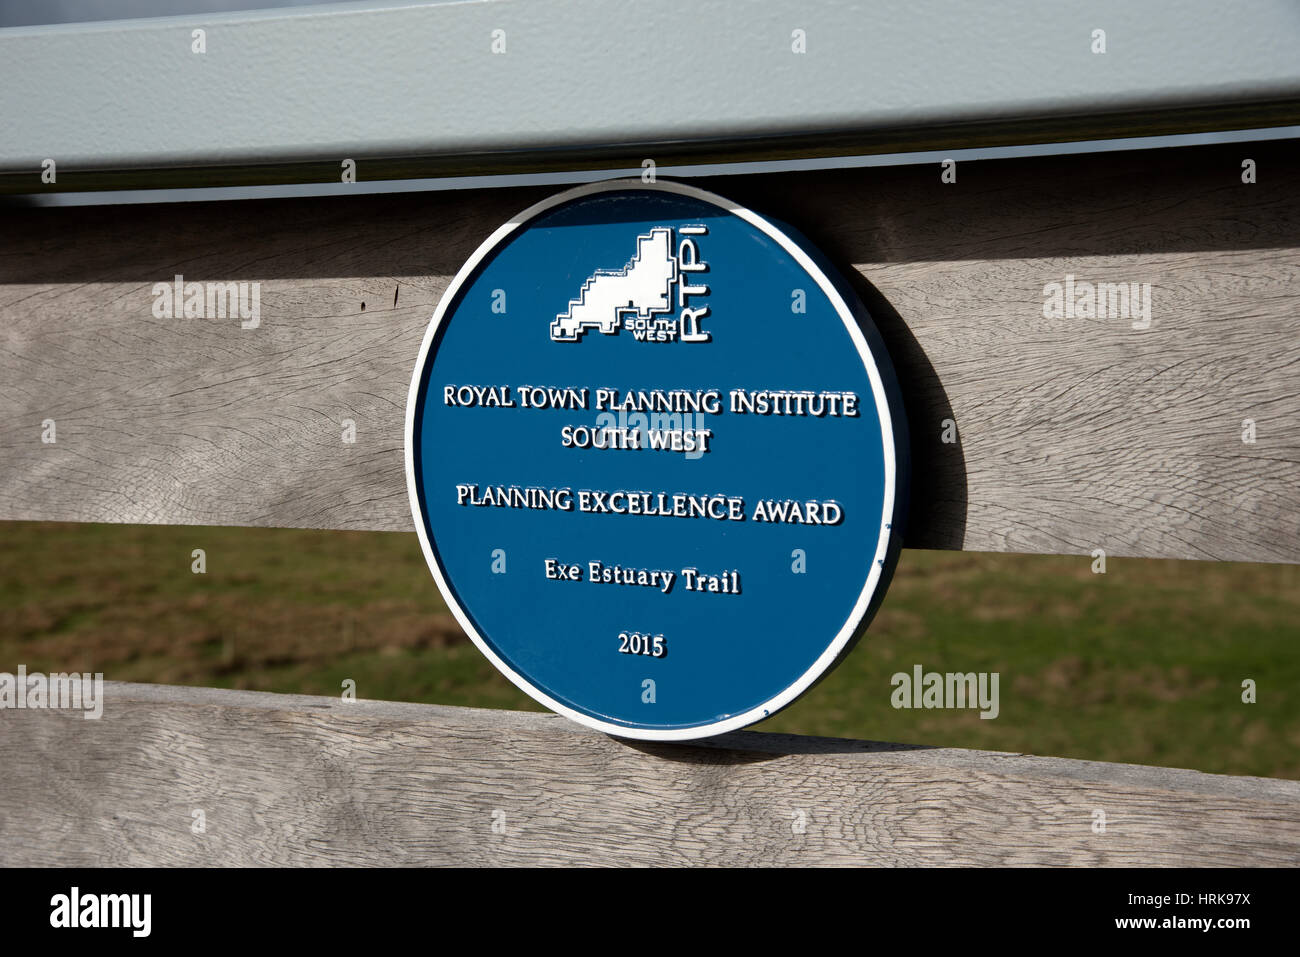 Planning Excellence Arad plaque on a footbridge on the Exe Estuary Trail for pedestrians and cyclists - Stock Image